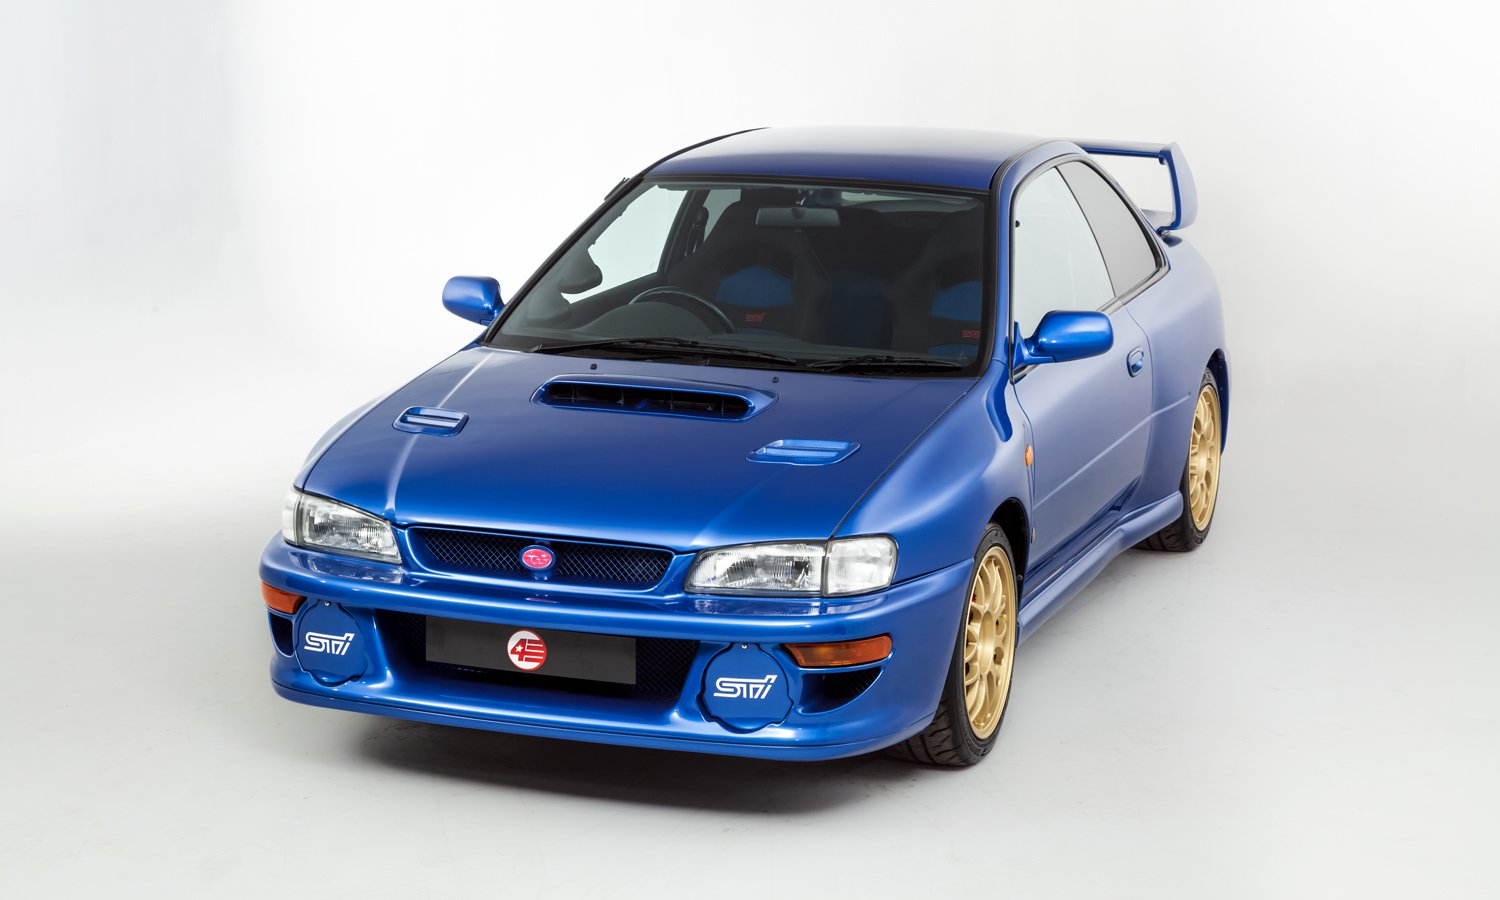 Subaru-Impreza-22B-STi-1998-for-sale-4